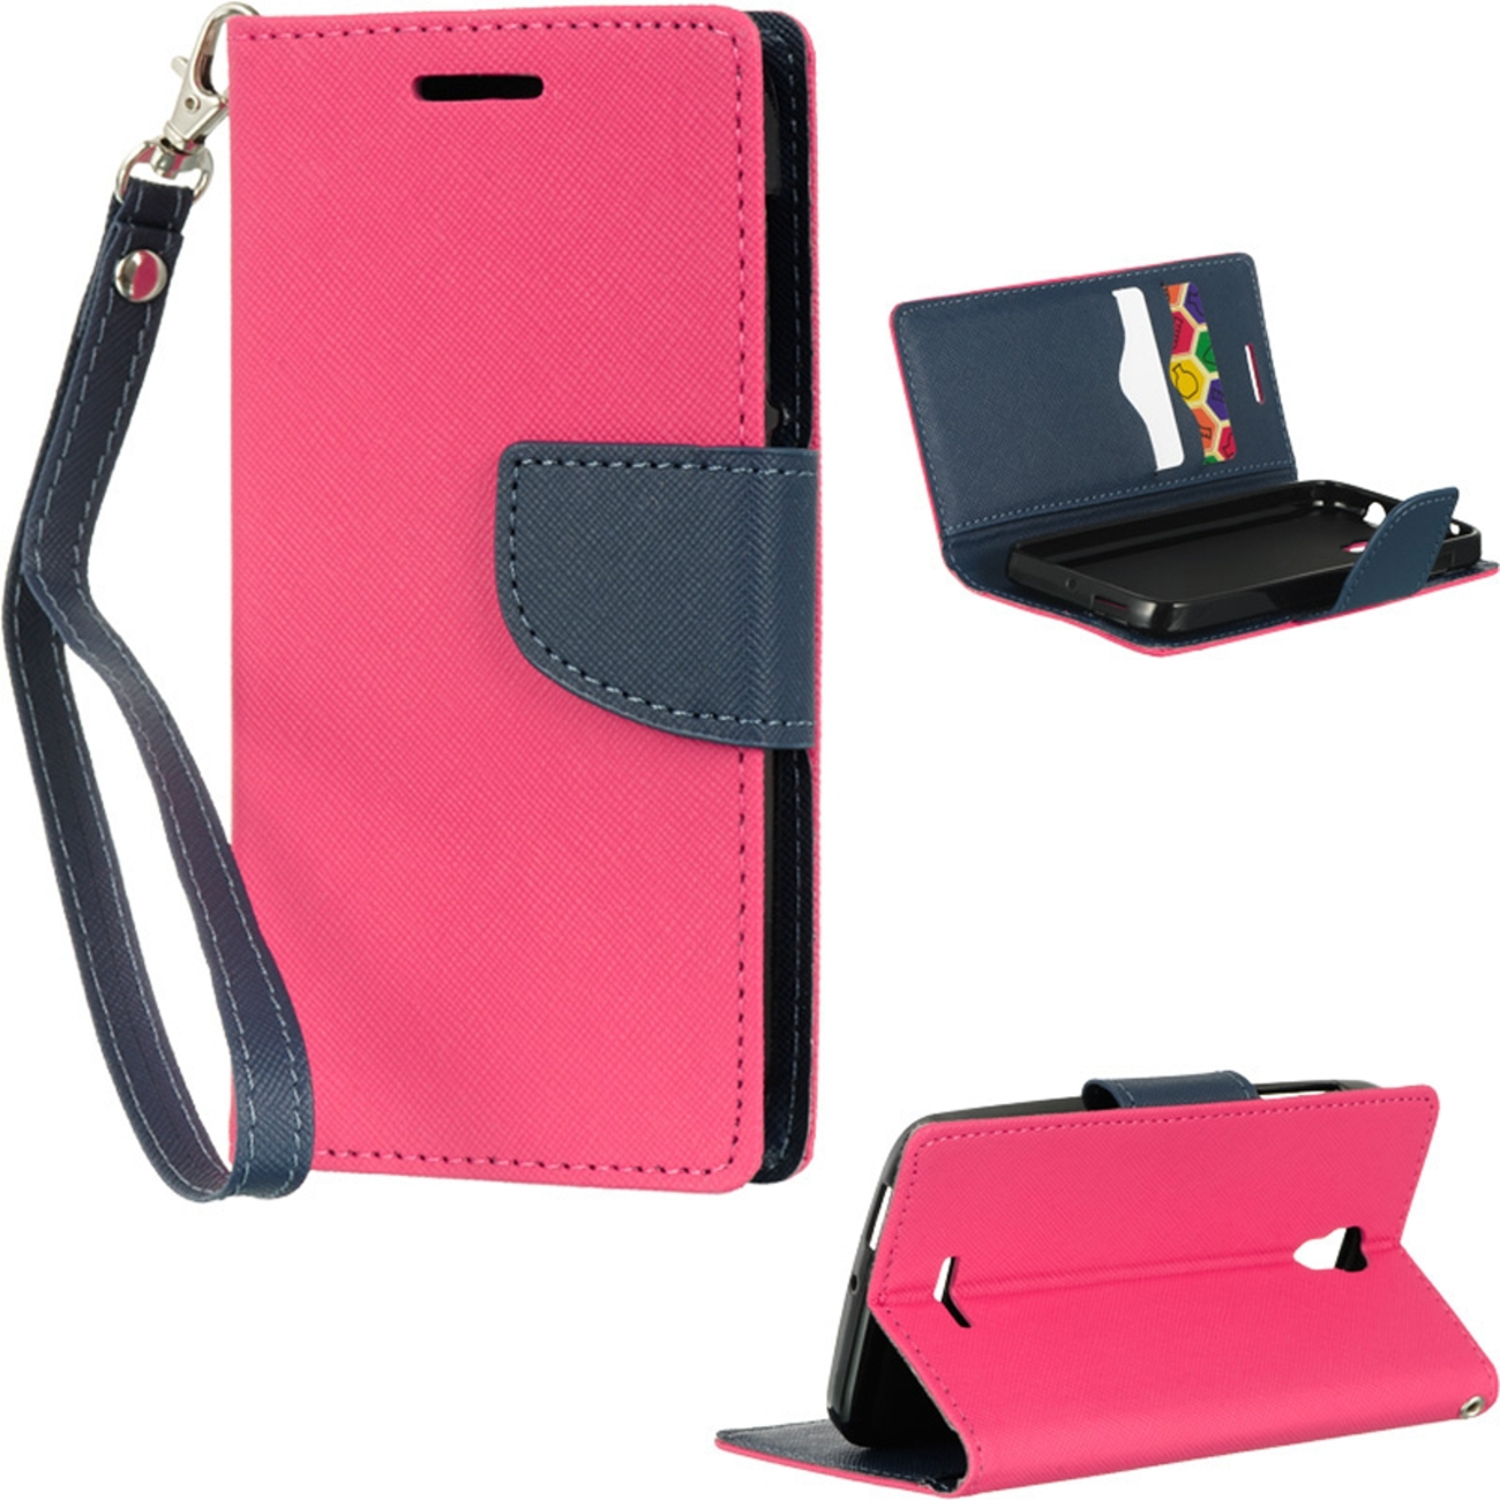 Insten Book-Style Leather Wallet Fabric Phone Case with Lanyard For Alcatel One Touch Pop Astro - Hot Pink/Blue